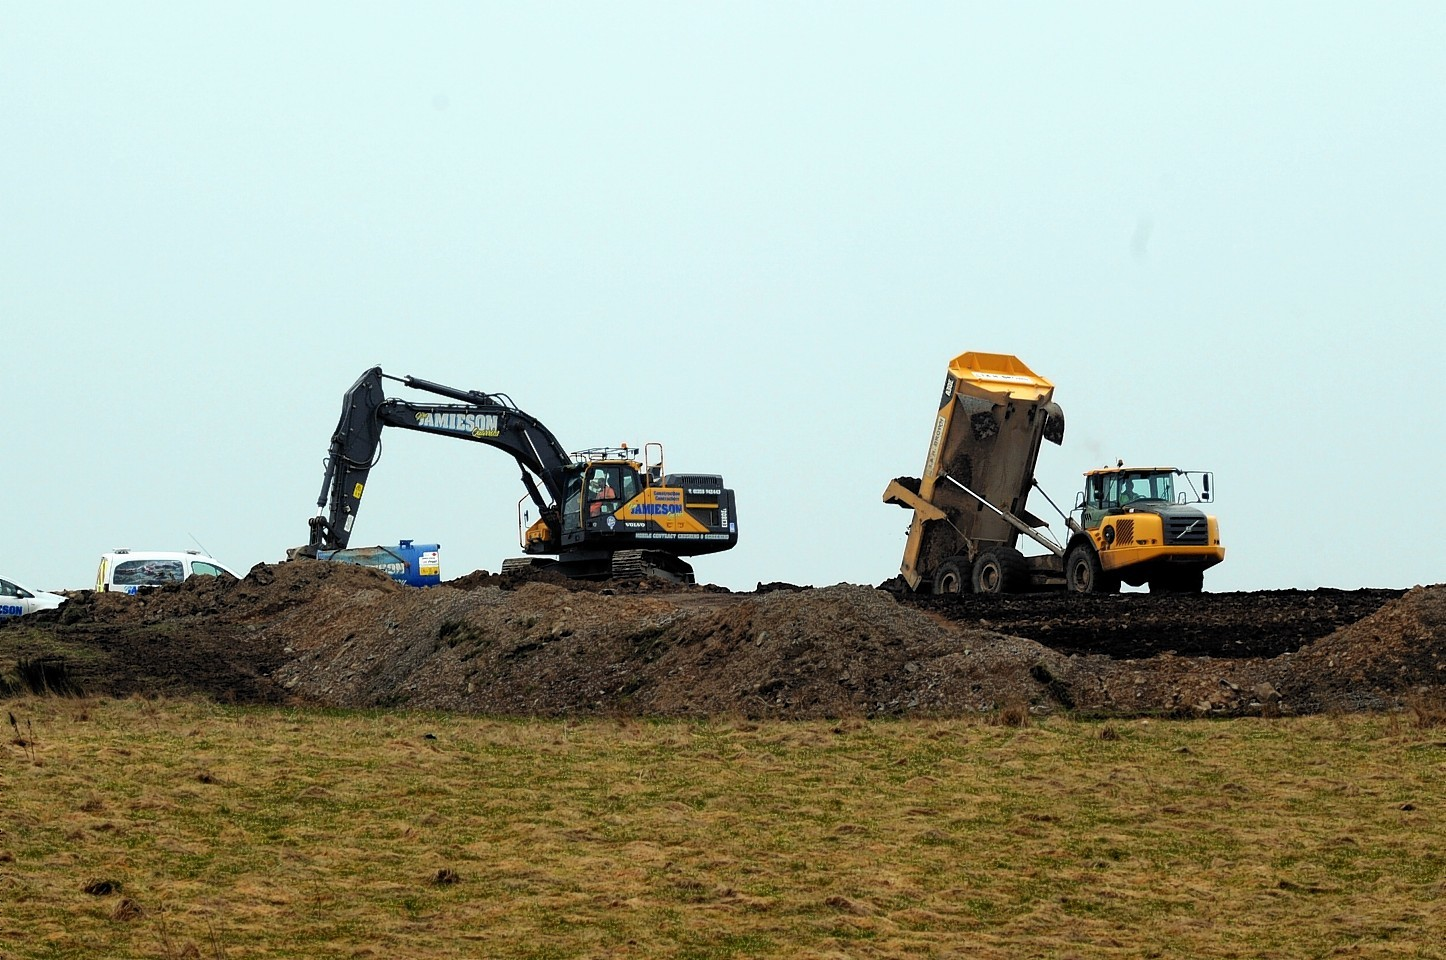 Aberdeenshire Council have launched an investigation into work at Bruntland, Whitecairns